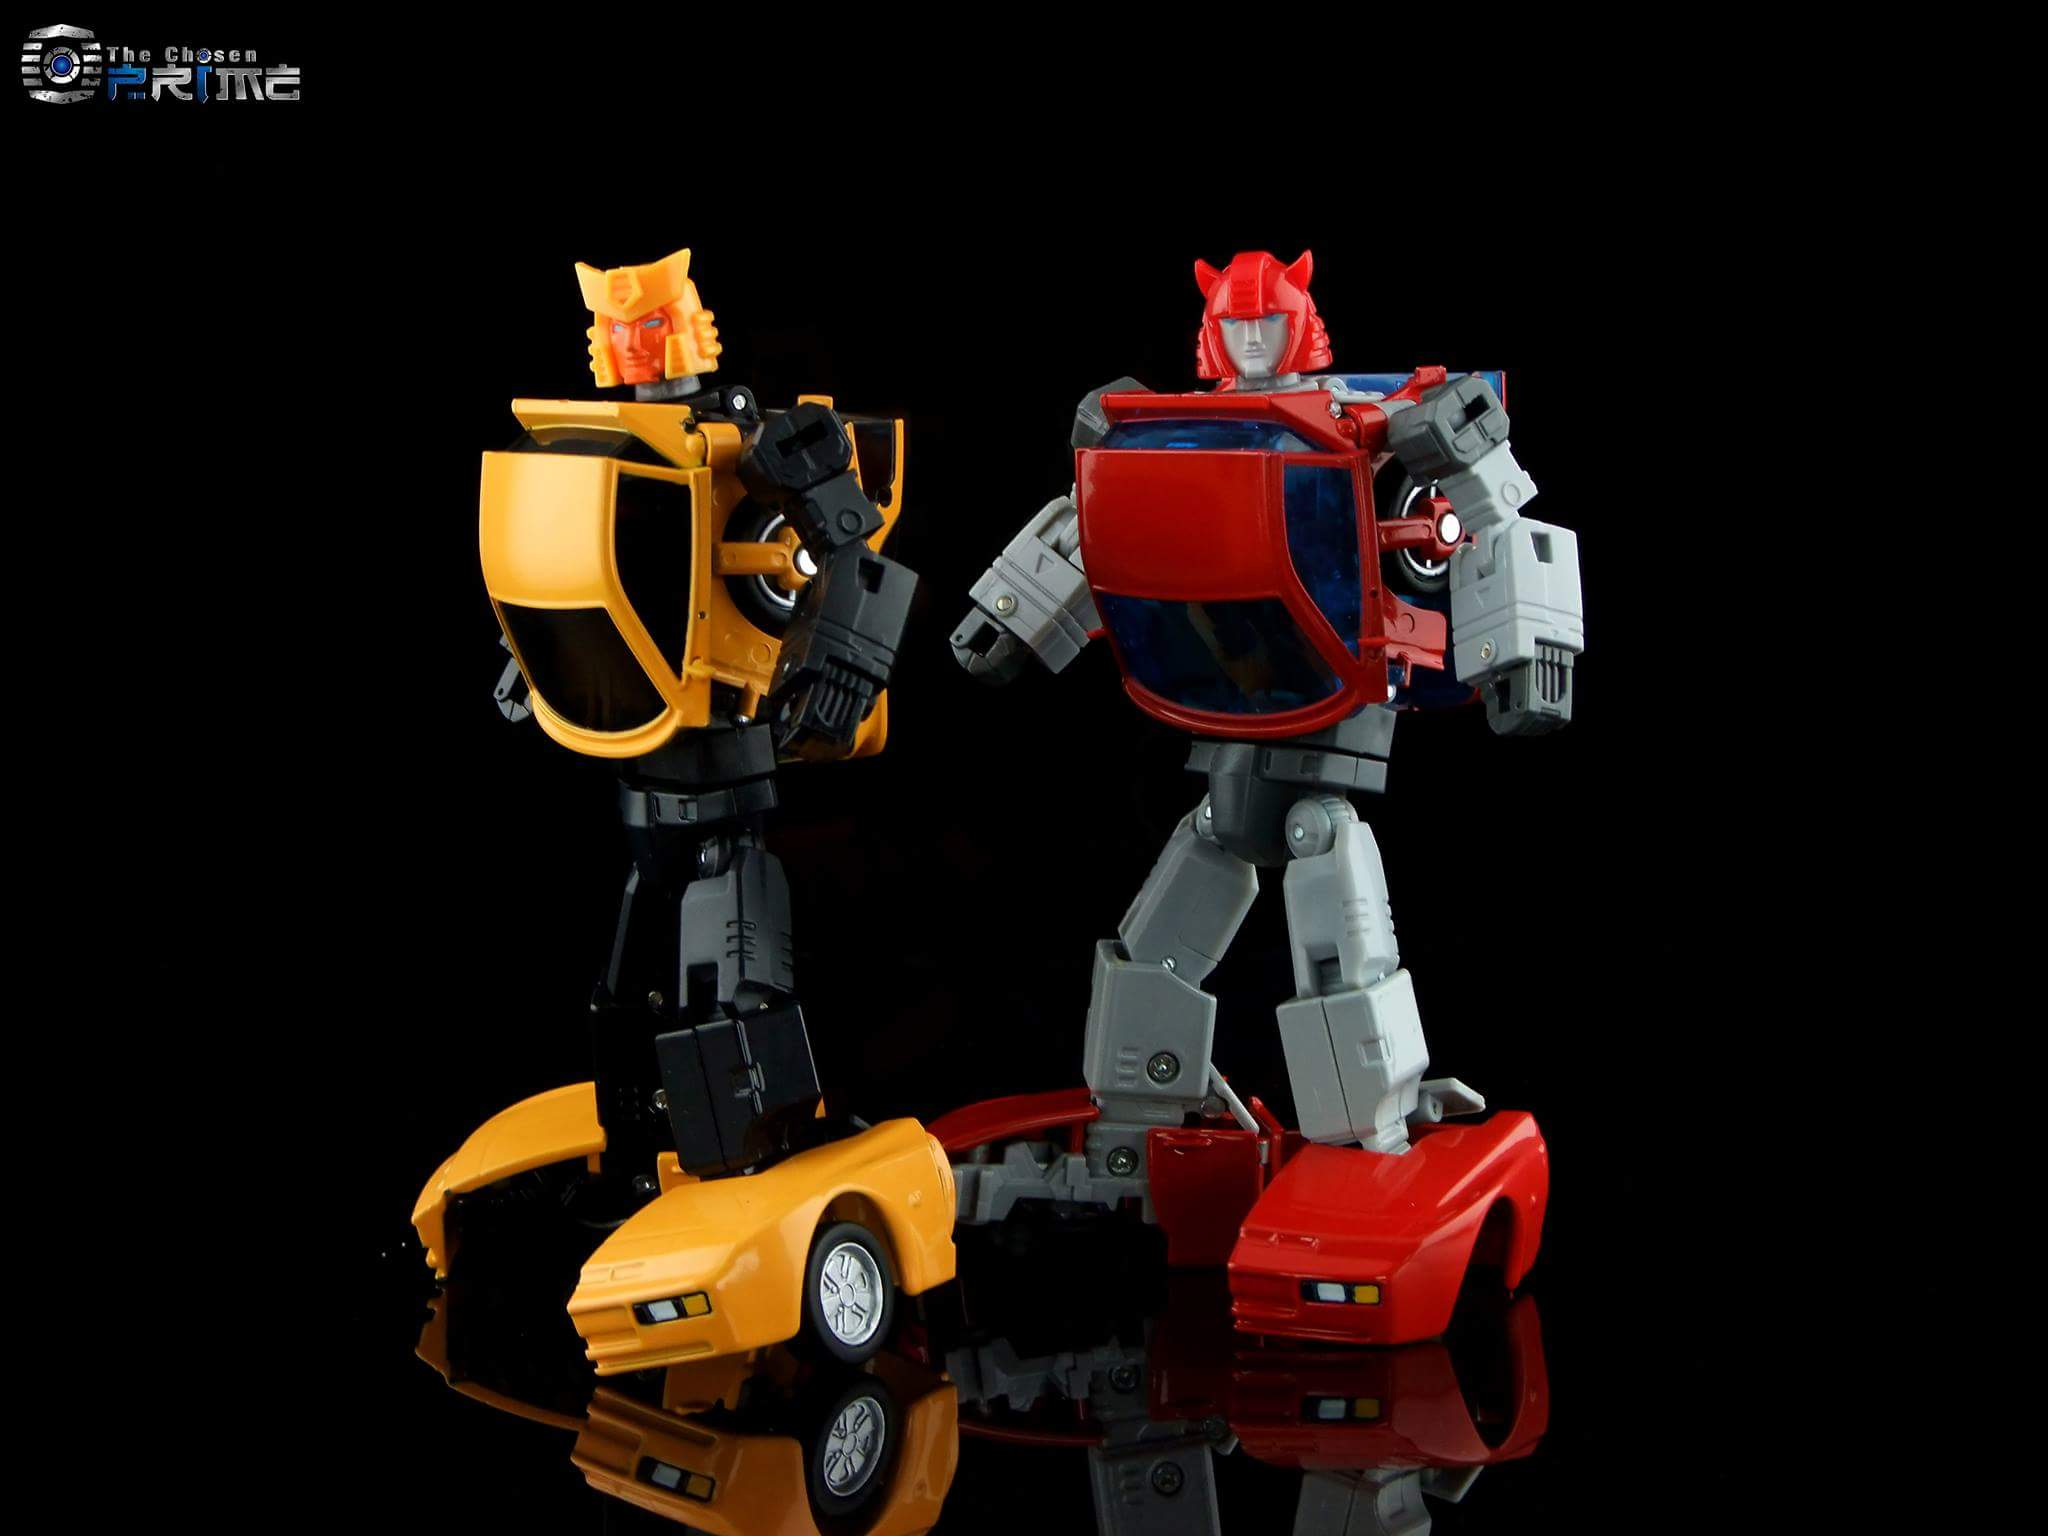 [ACE Collectables] Produit Tiers - Minibots MP - ACE-01 Tumbler (aka Cliffjumper/Matamore), ACE-02 Hiccups (aka Hubcap/Virevolto), ACE-03 Trident (aka Seaspray/Embruns) A9MUCpvG